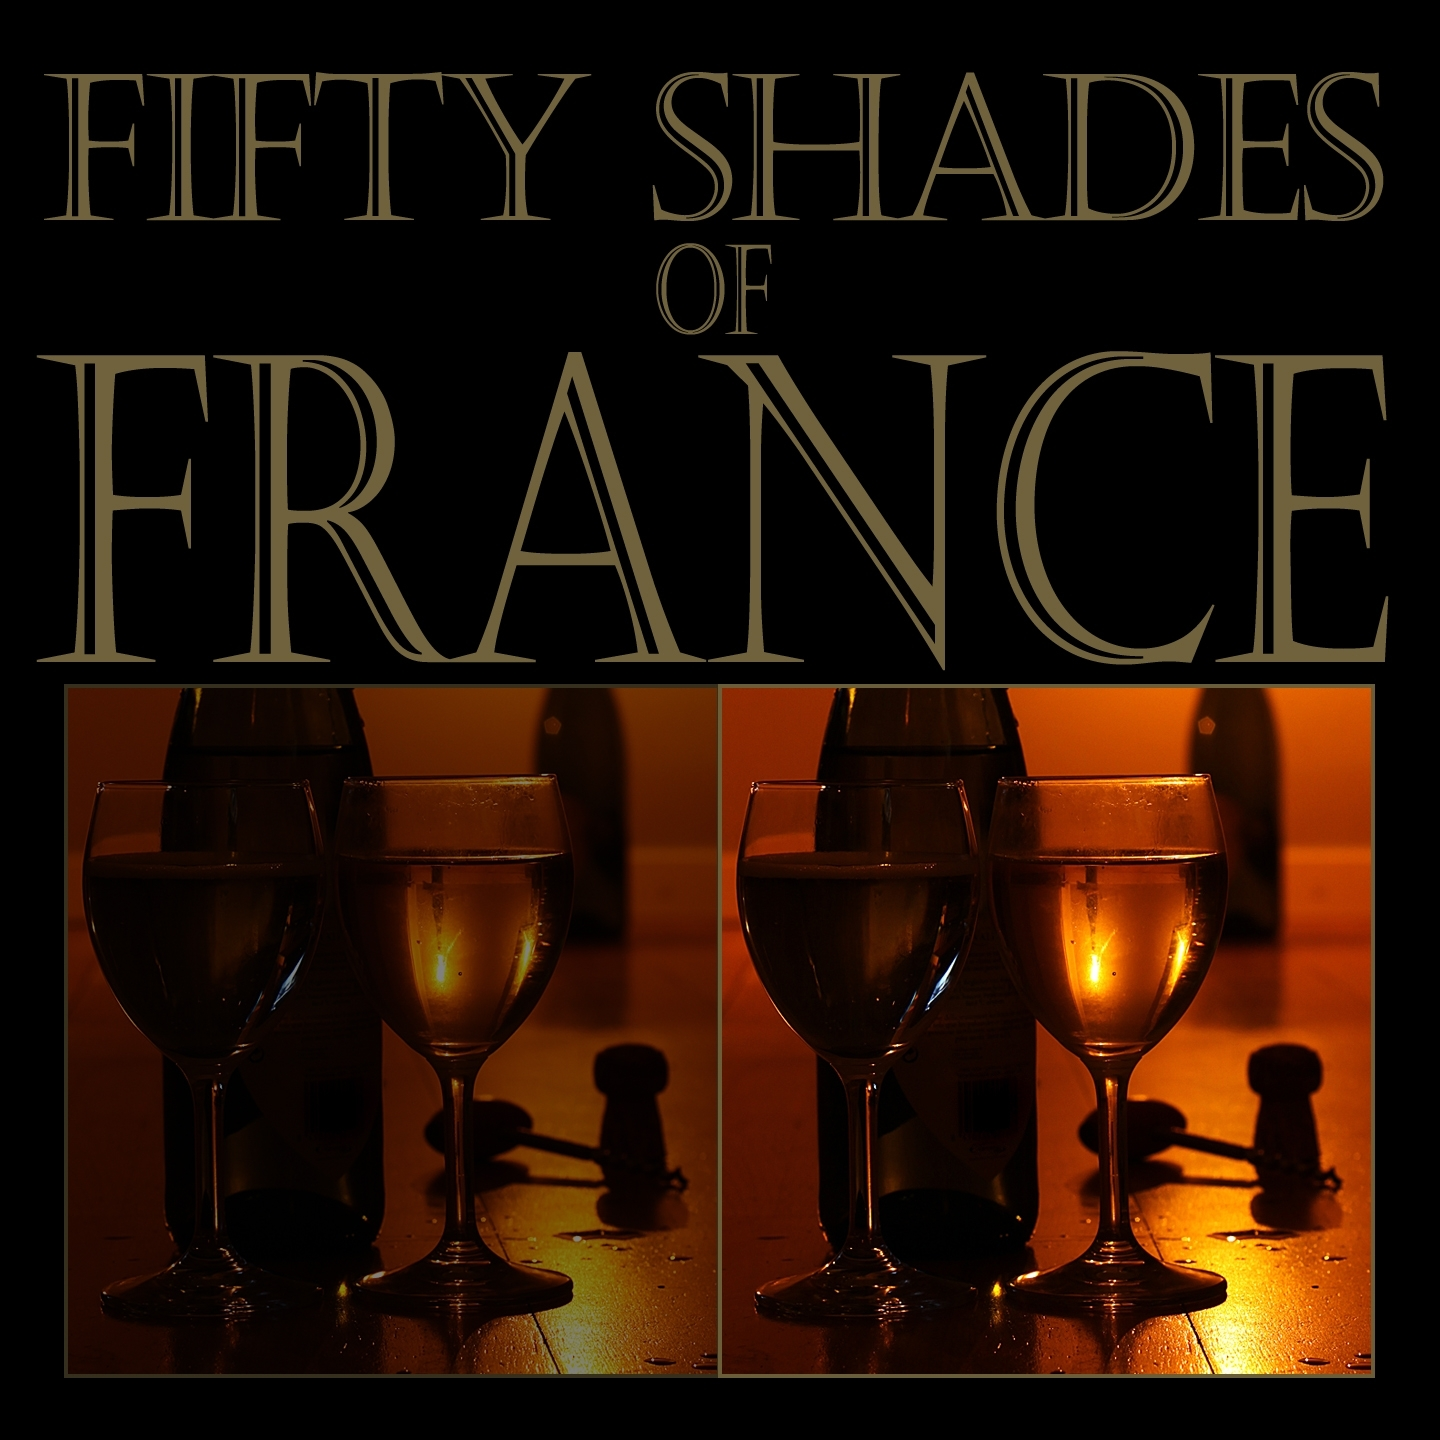 Fifty Shades of France